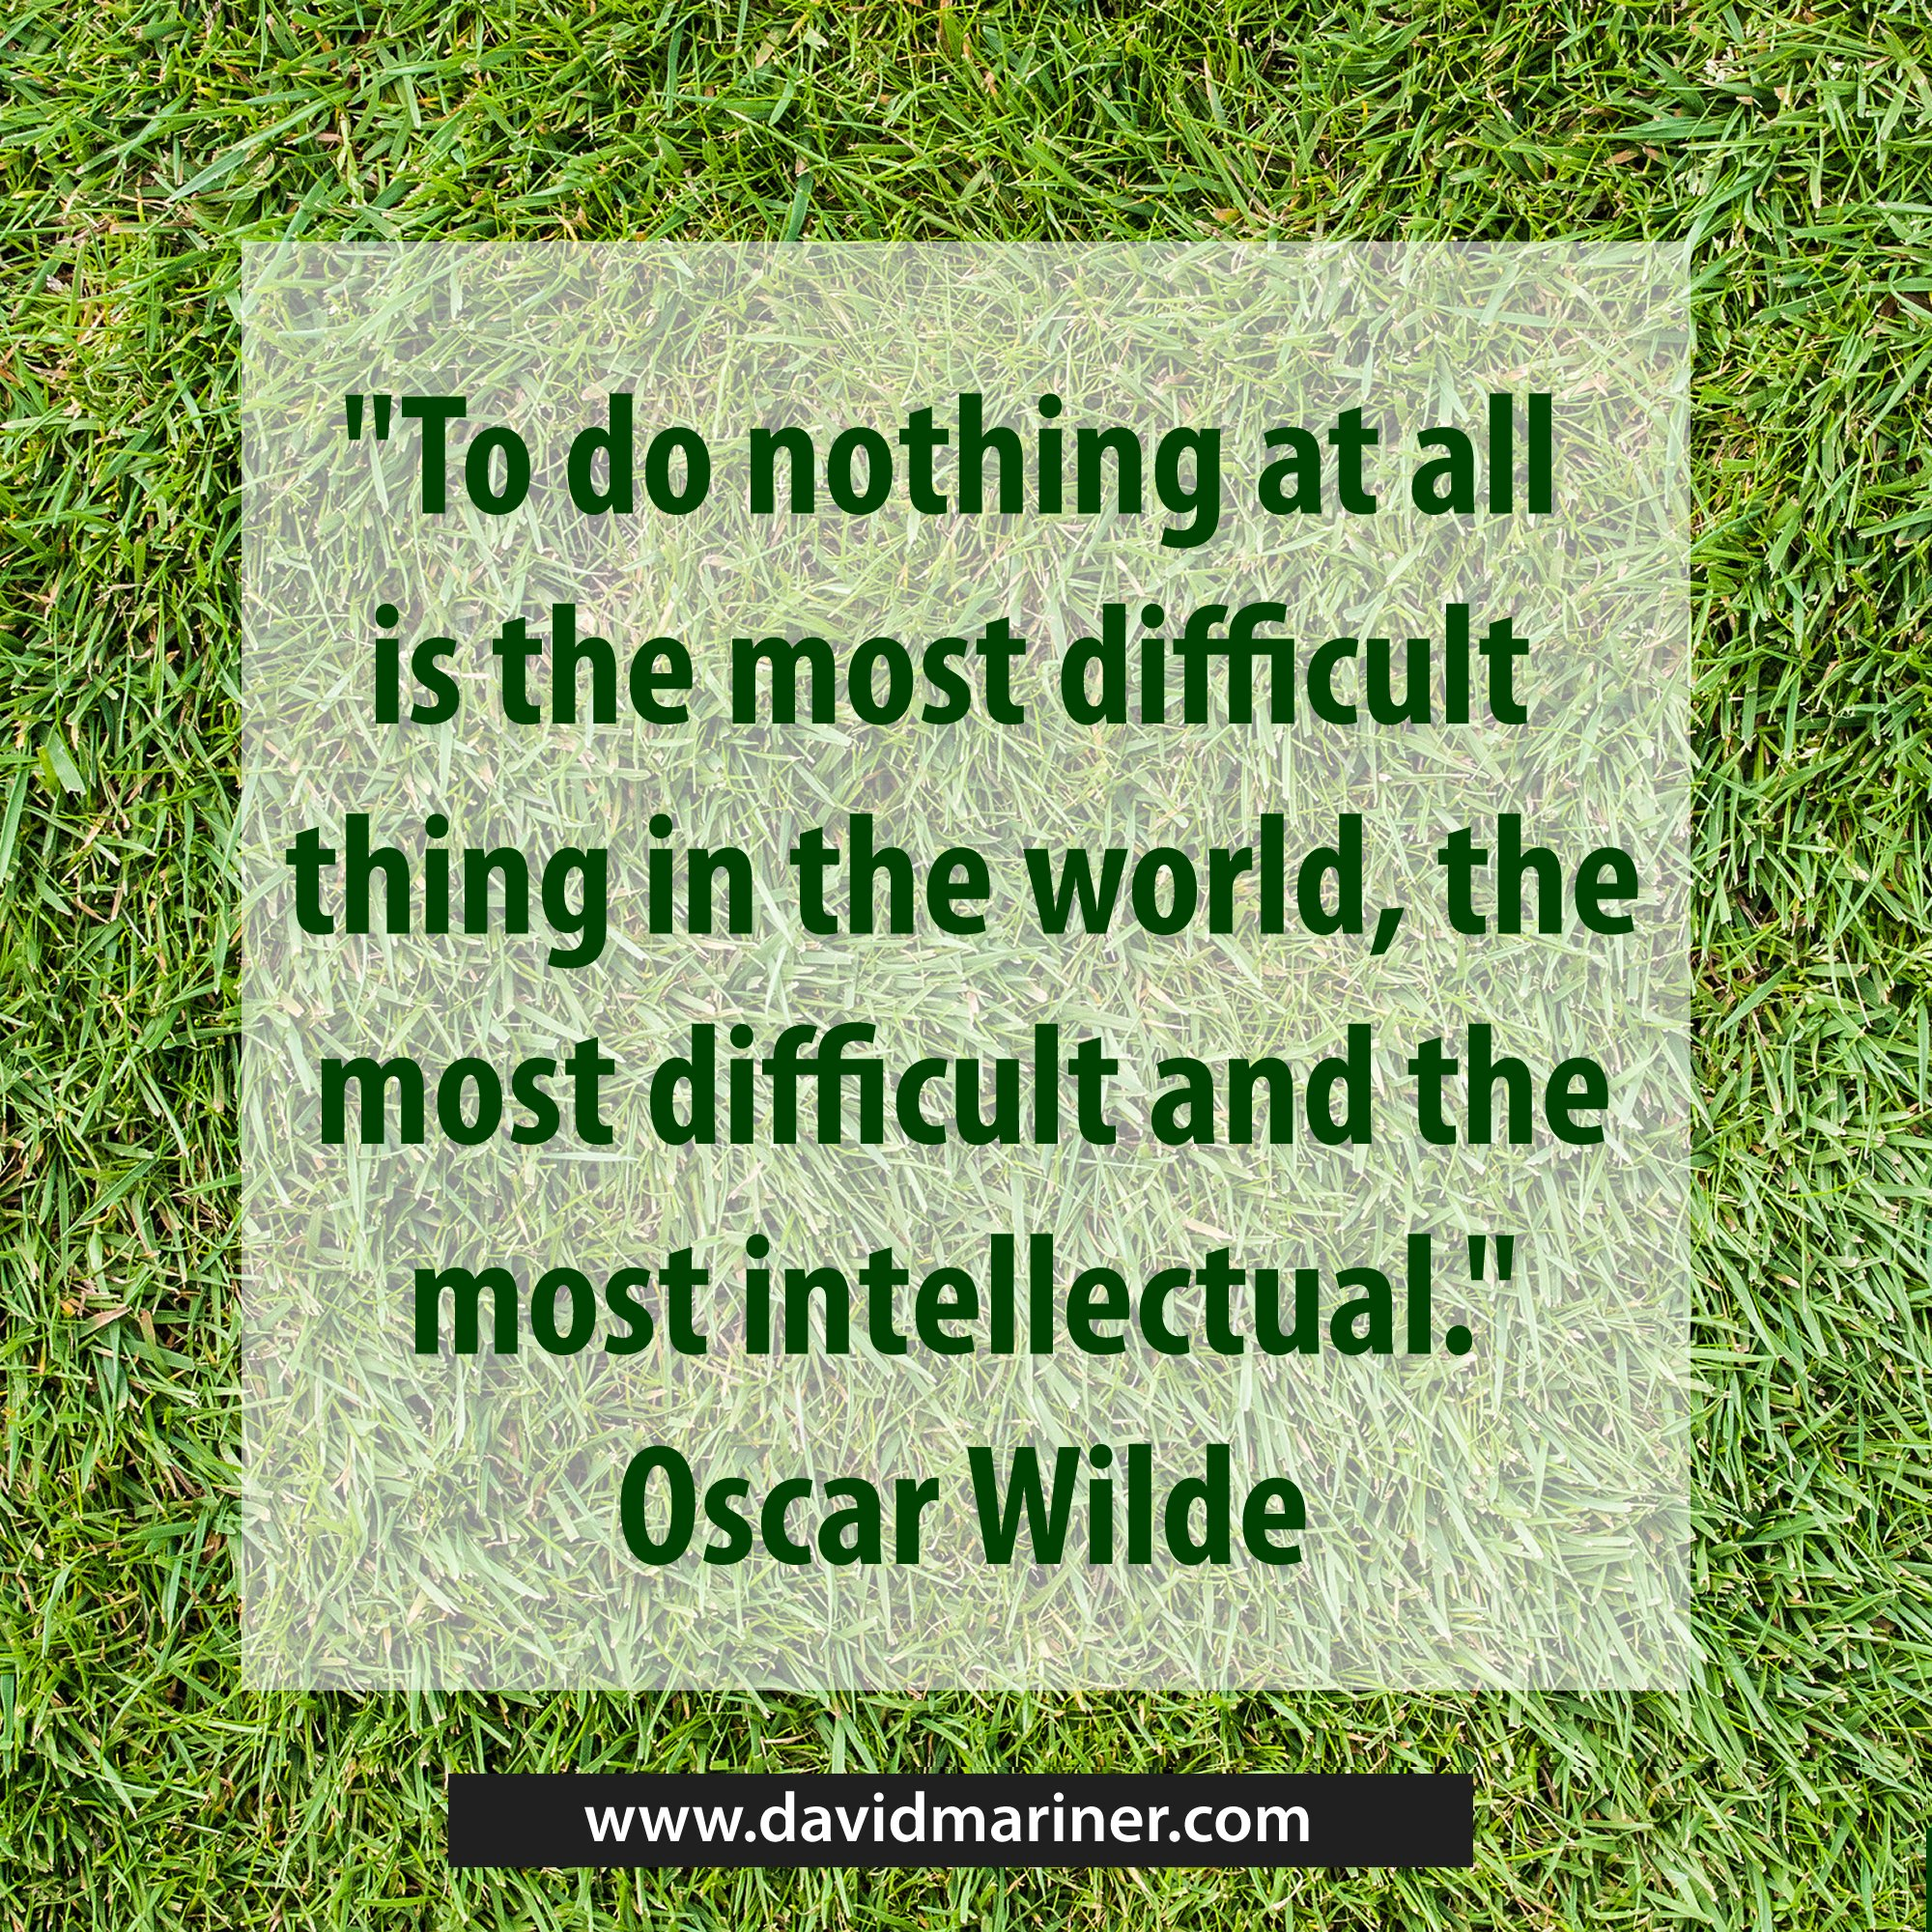 To do nothing at all is the most difficult thing in the world, the most difficult and the most intellectual